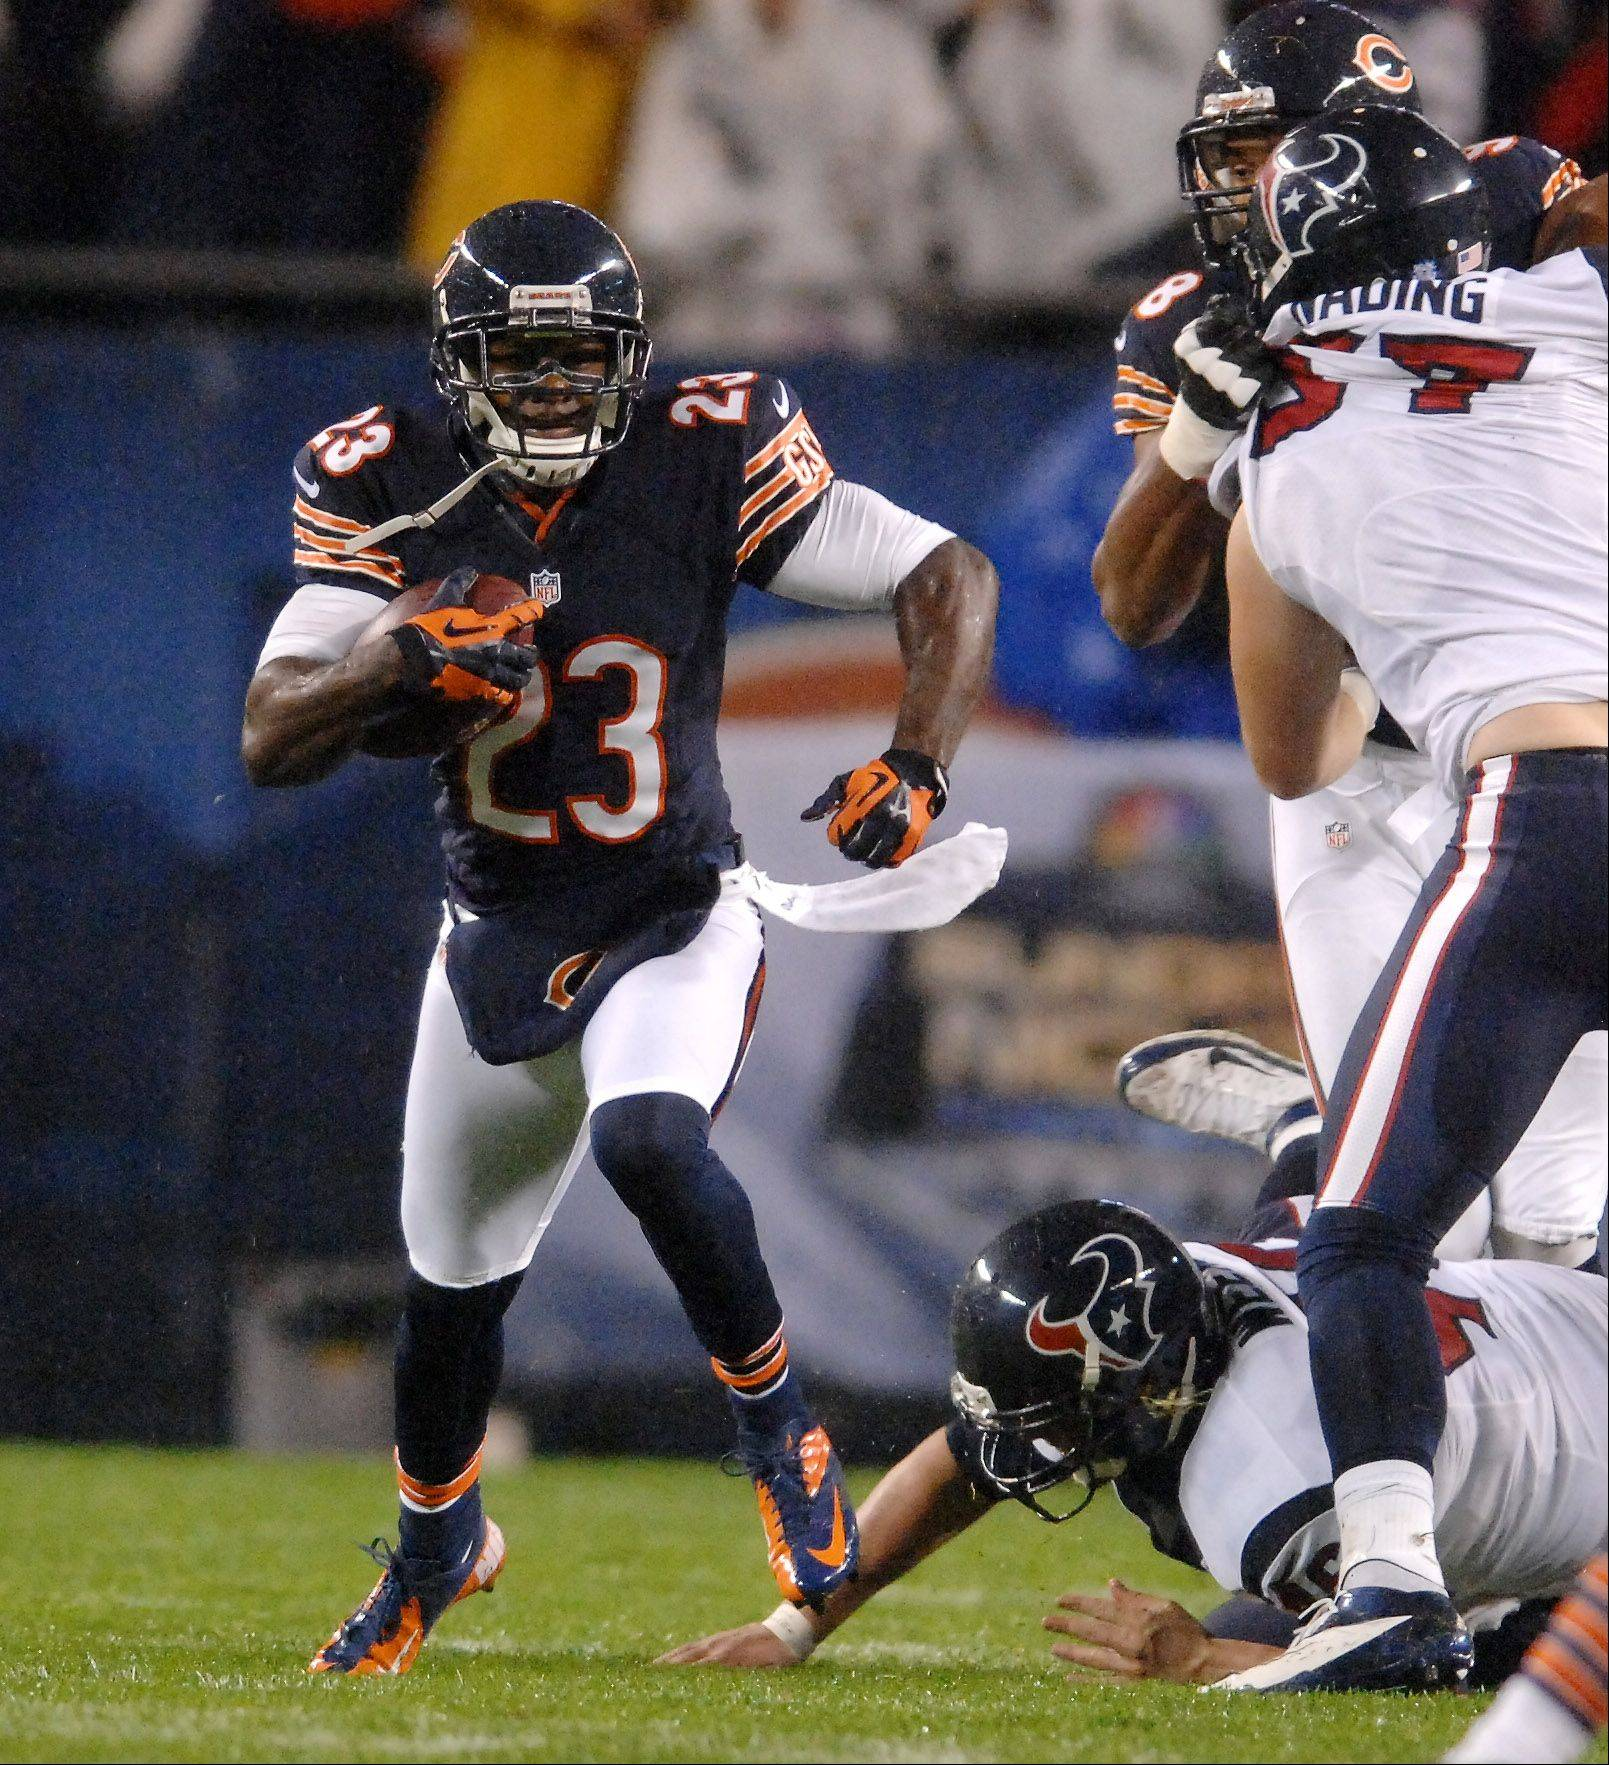 Bears wide receiver Devin Hester (23) breaks a tackle on a punt return during Sunday's game at Soldier Field in Chicago.